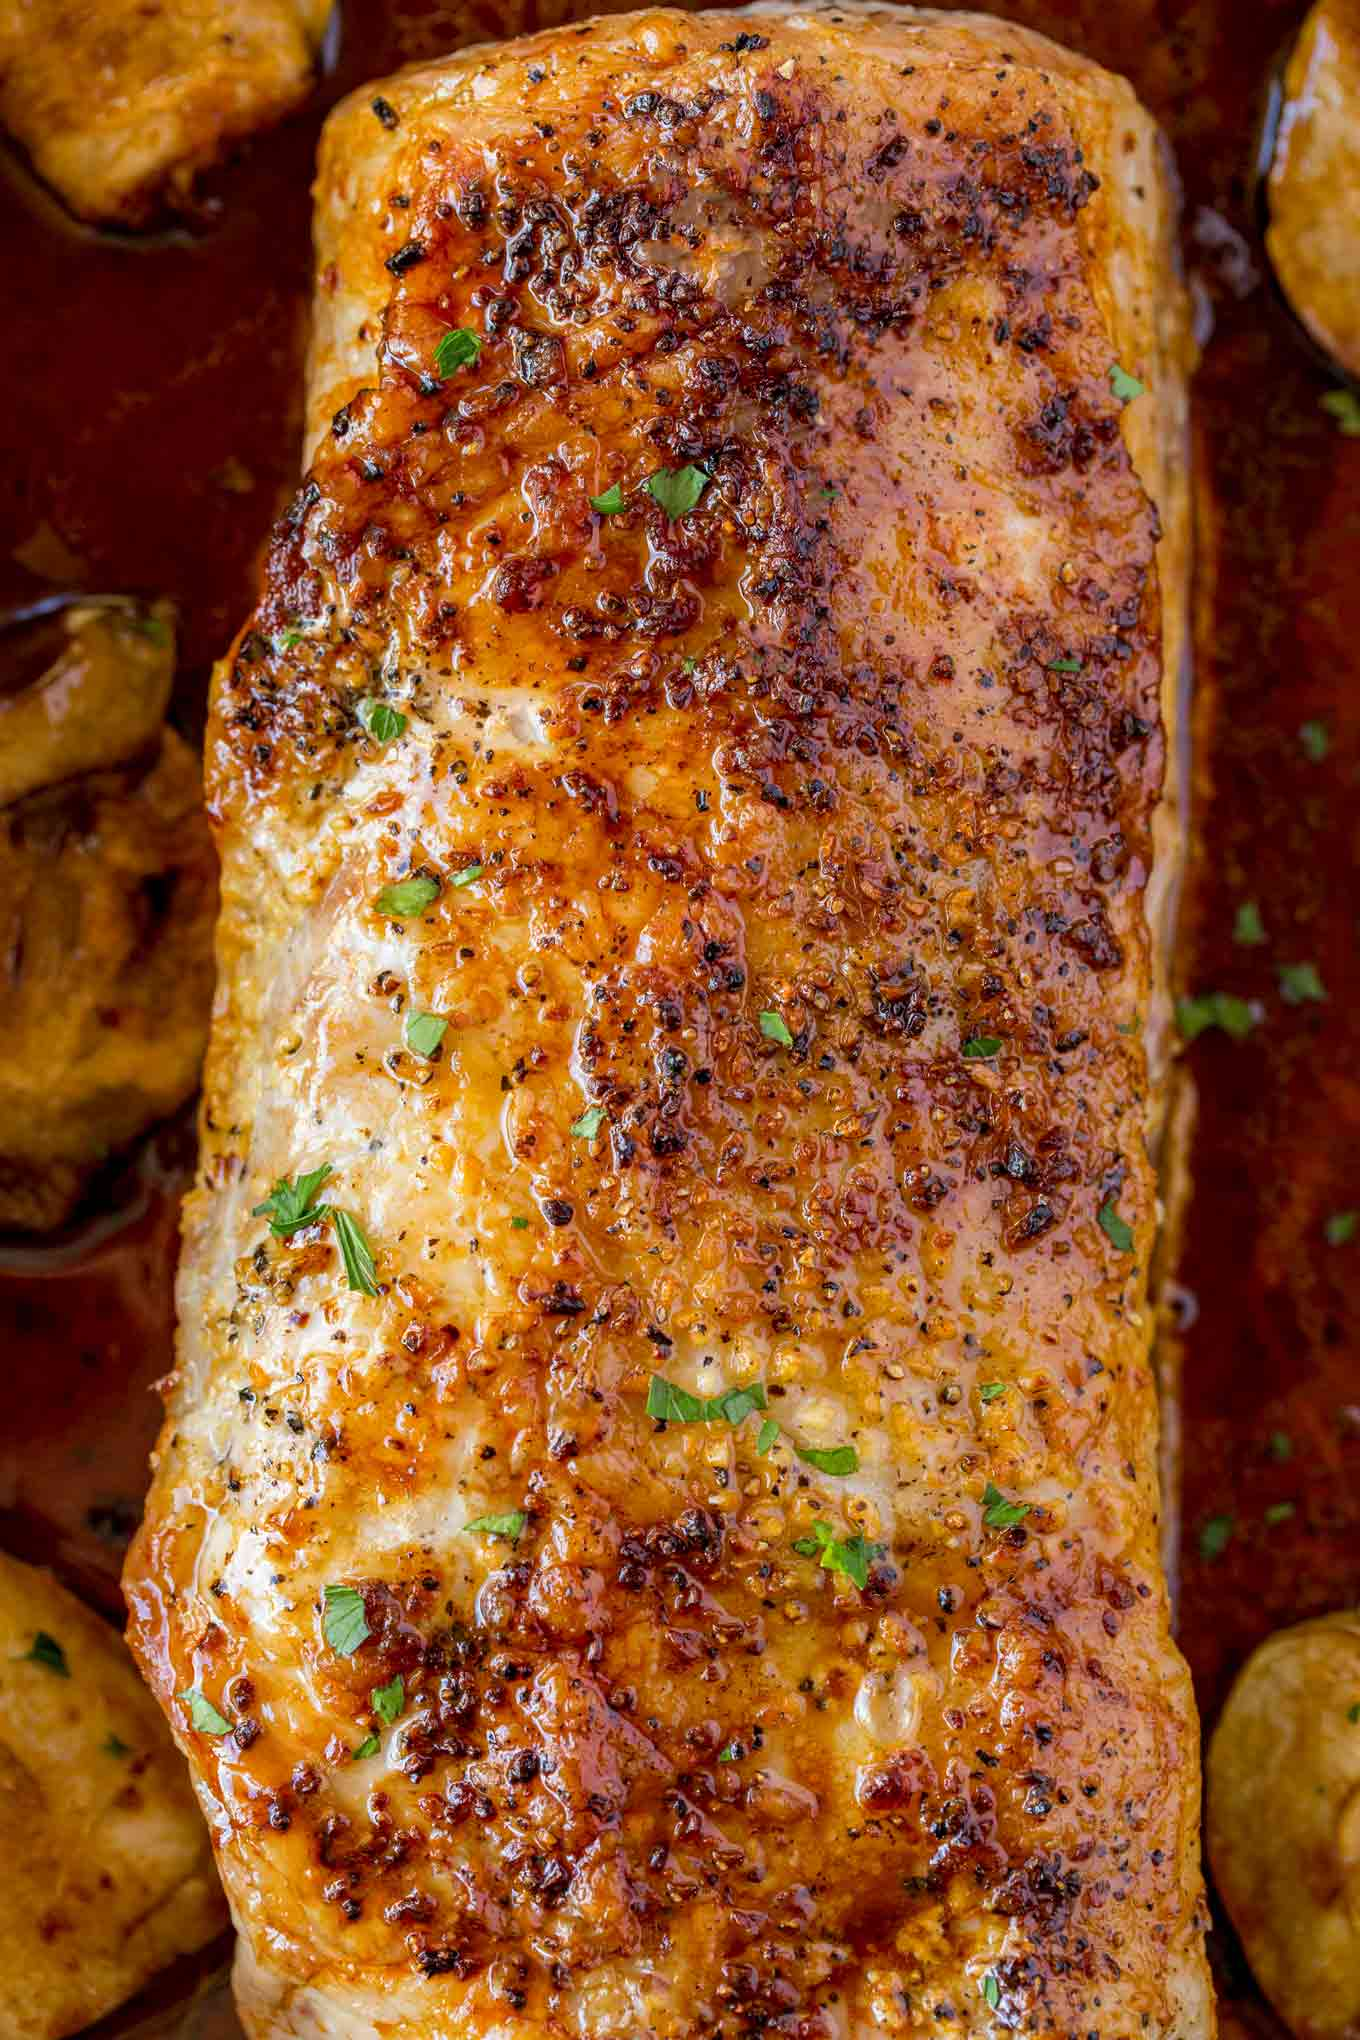 Super crispy topping that is really flavorful, this pork loin roast is a super easy dinner option.